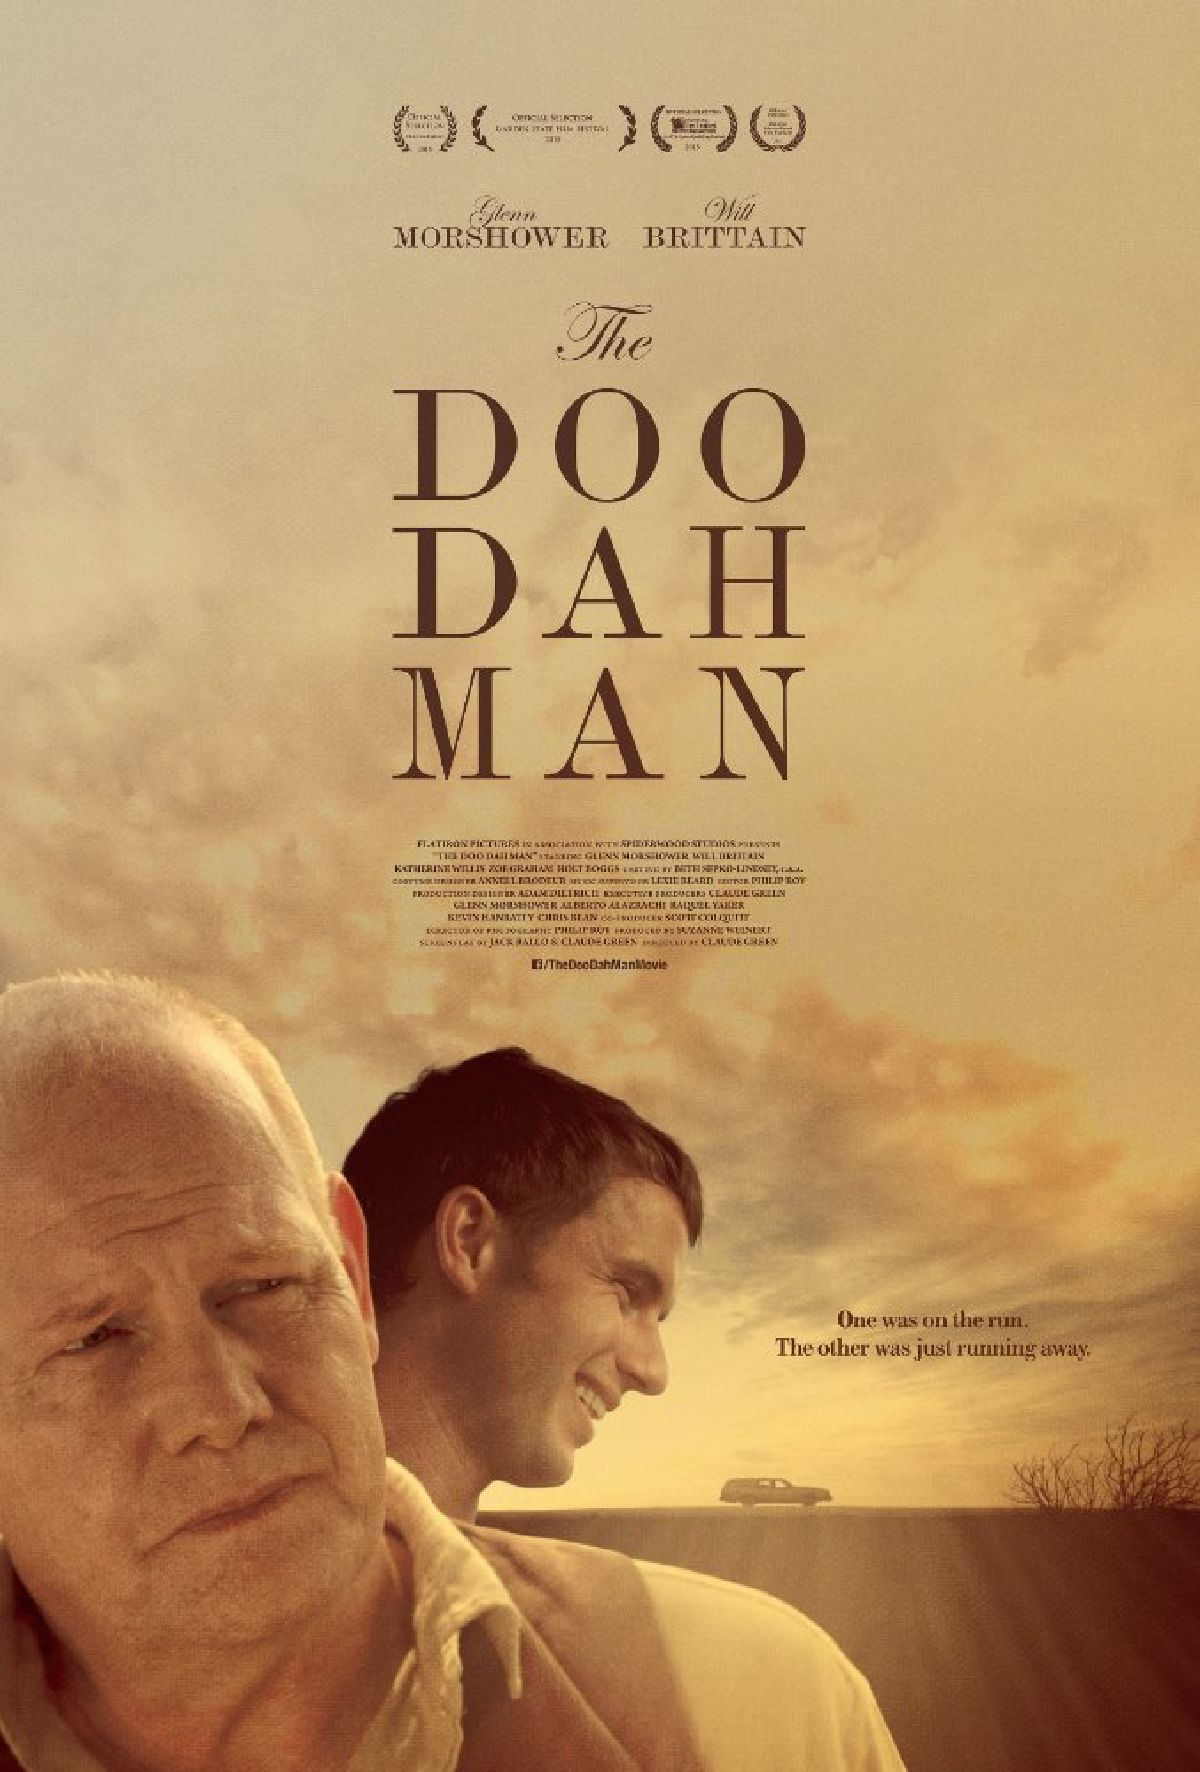 'The Doo Dah Man' movie poster